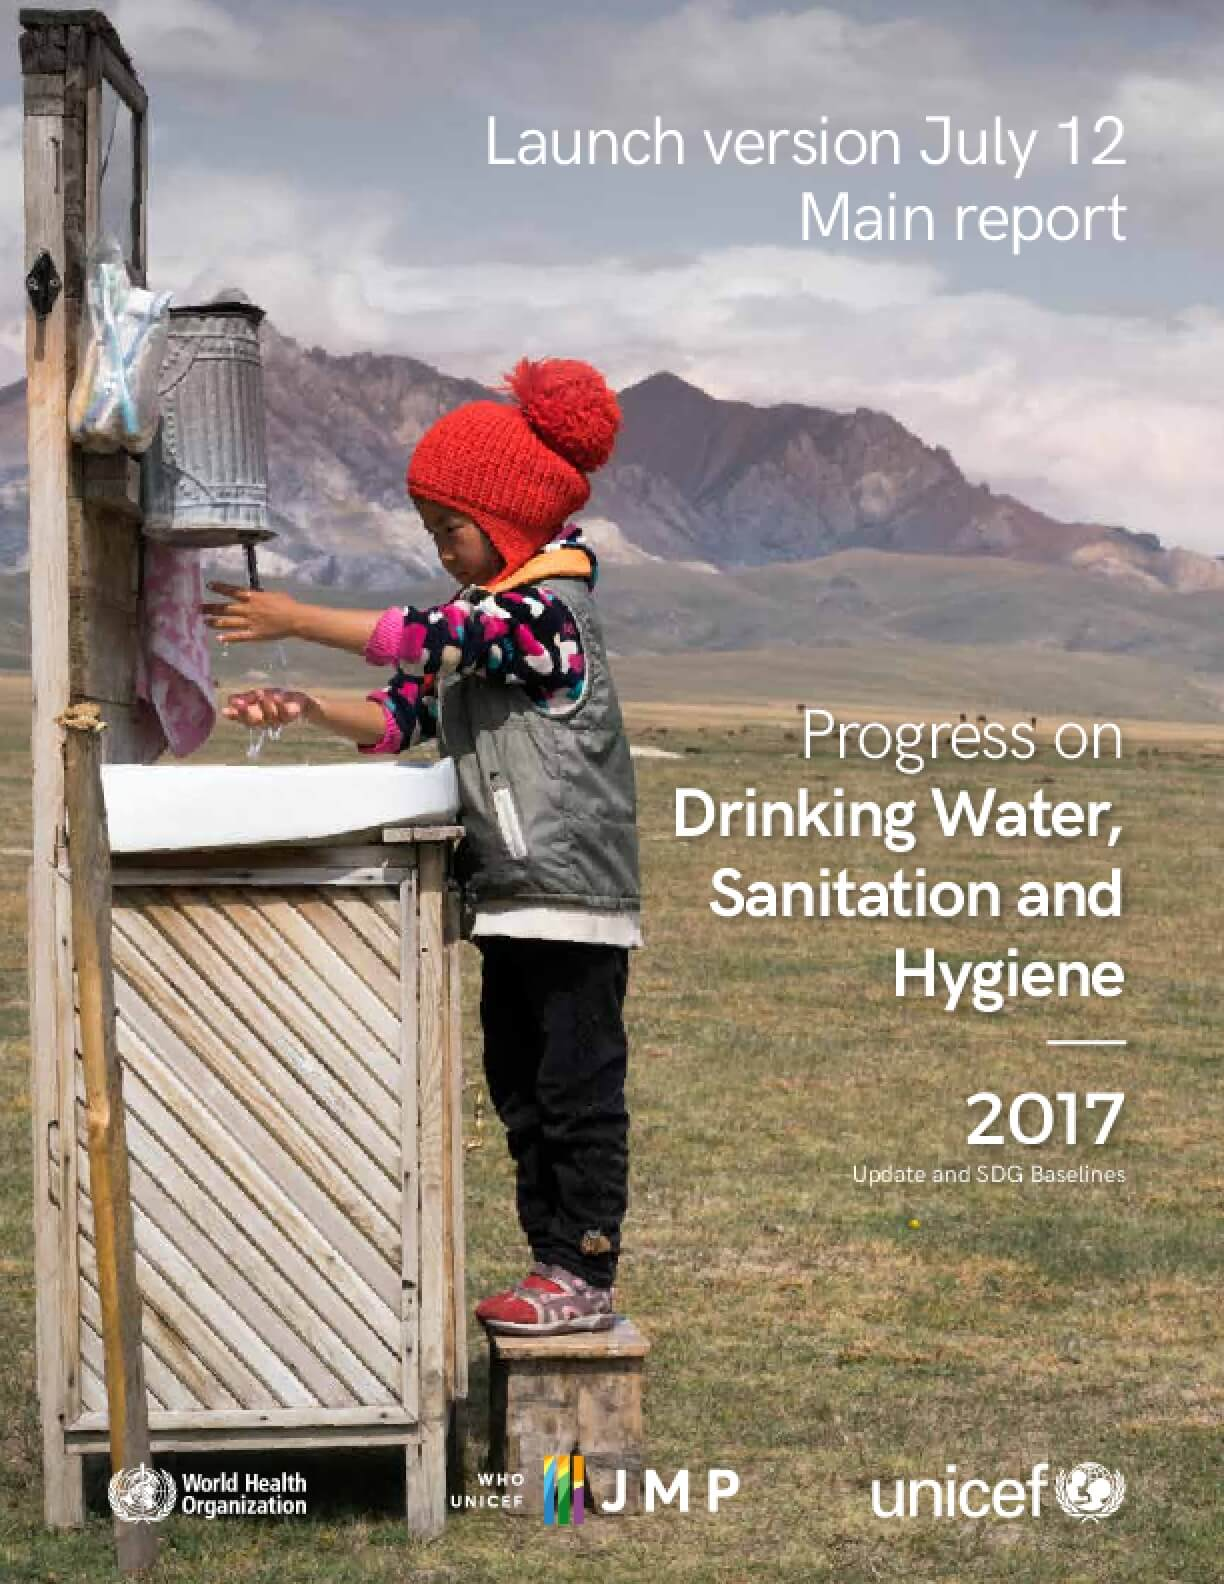 Progress on Drinking Water, Sanitation and Hygiene: 2017 Update and SDG Baselines